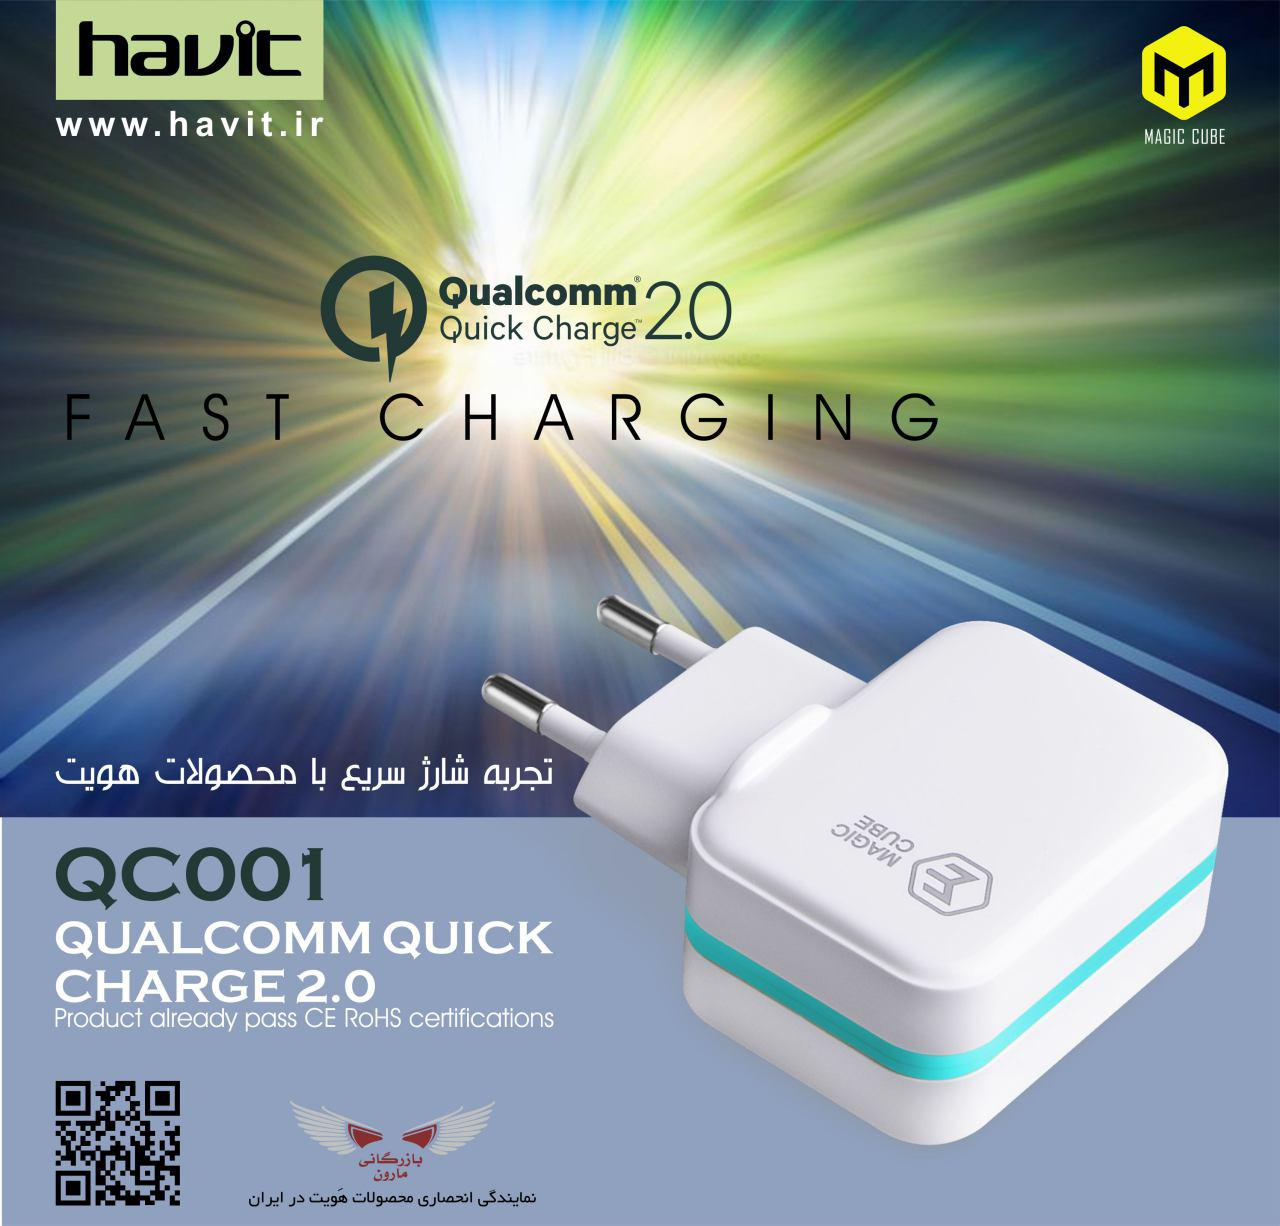 Havit QC001 Charger